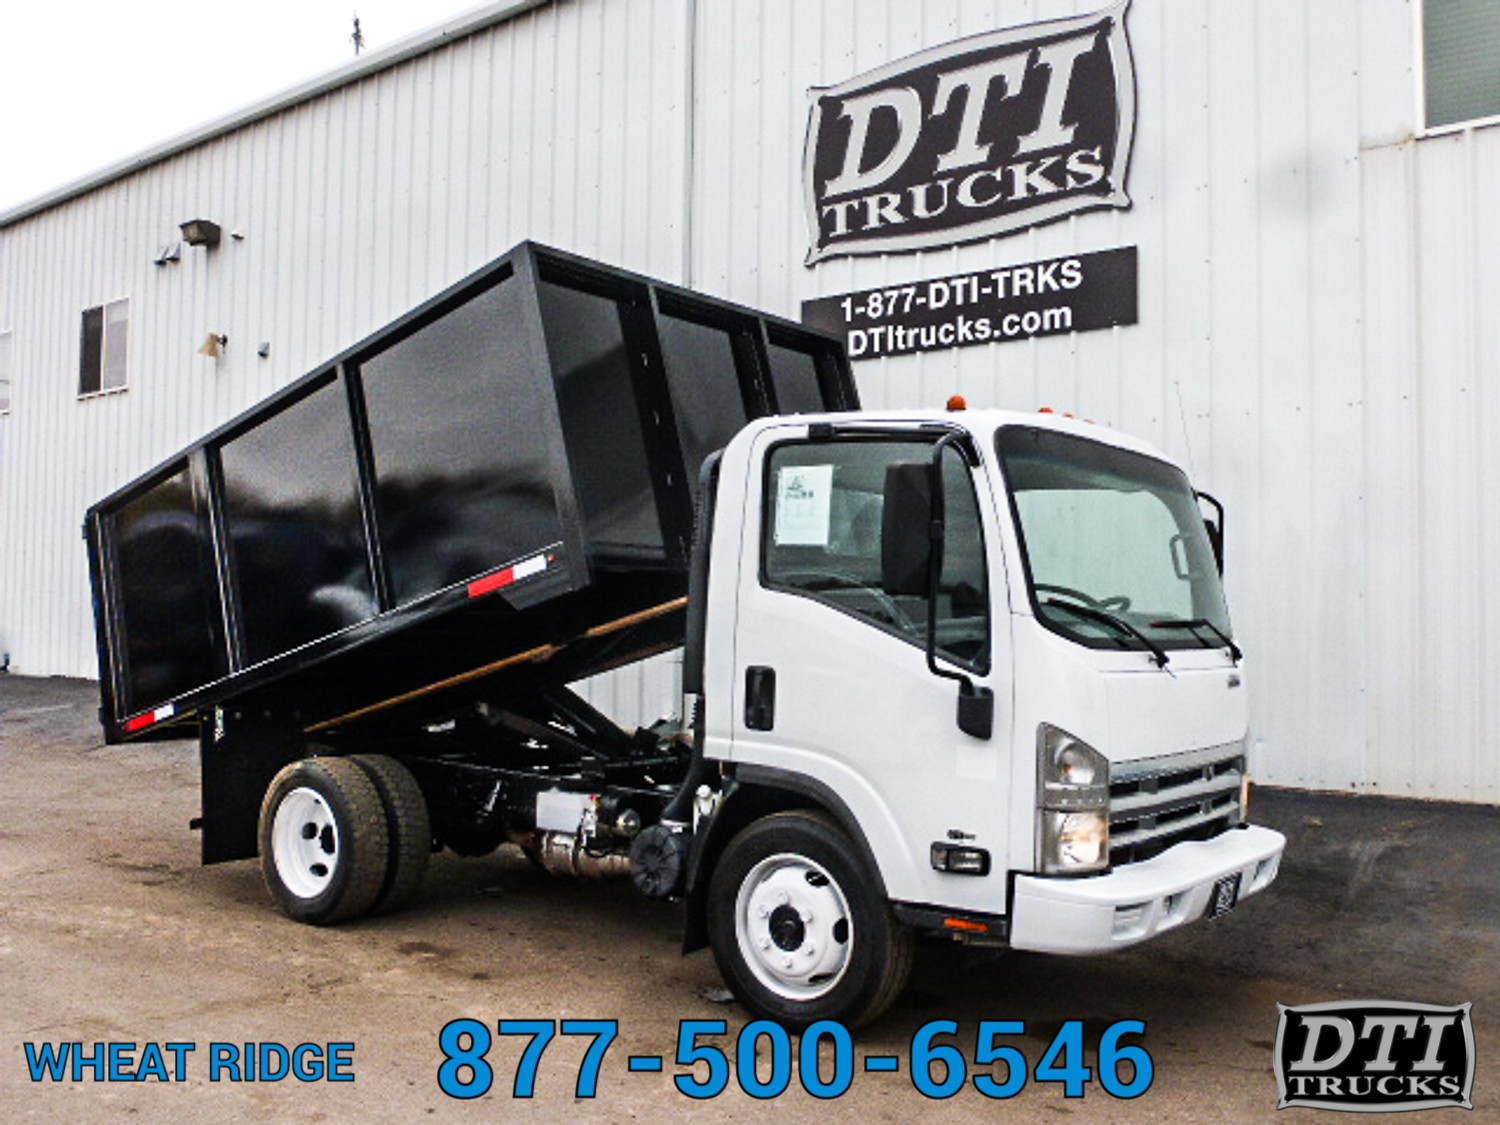 Commercial Truck Dealer in Denver | Sales, Parts & Service